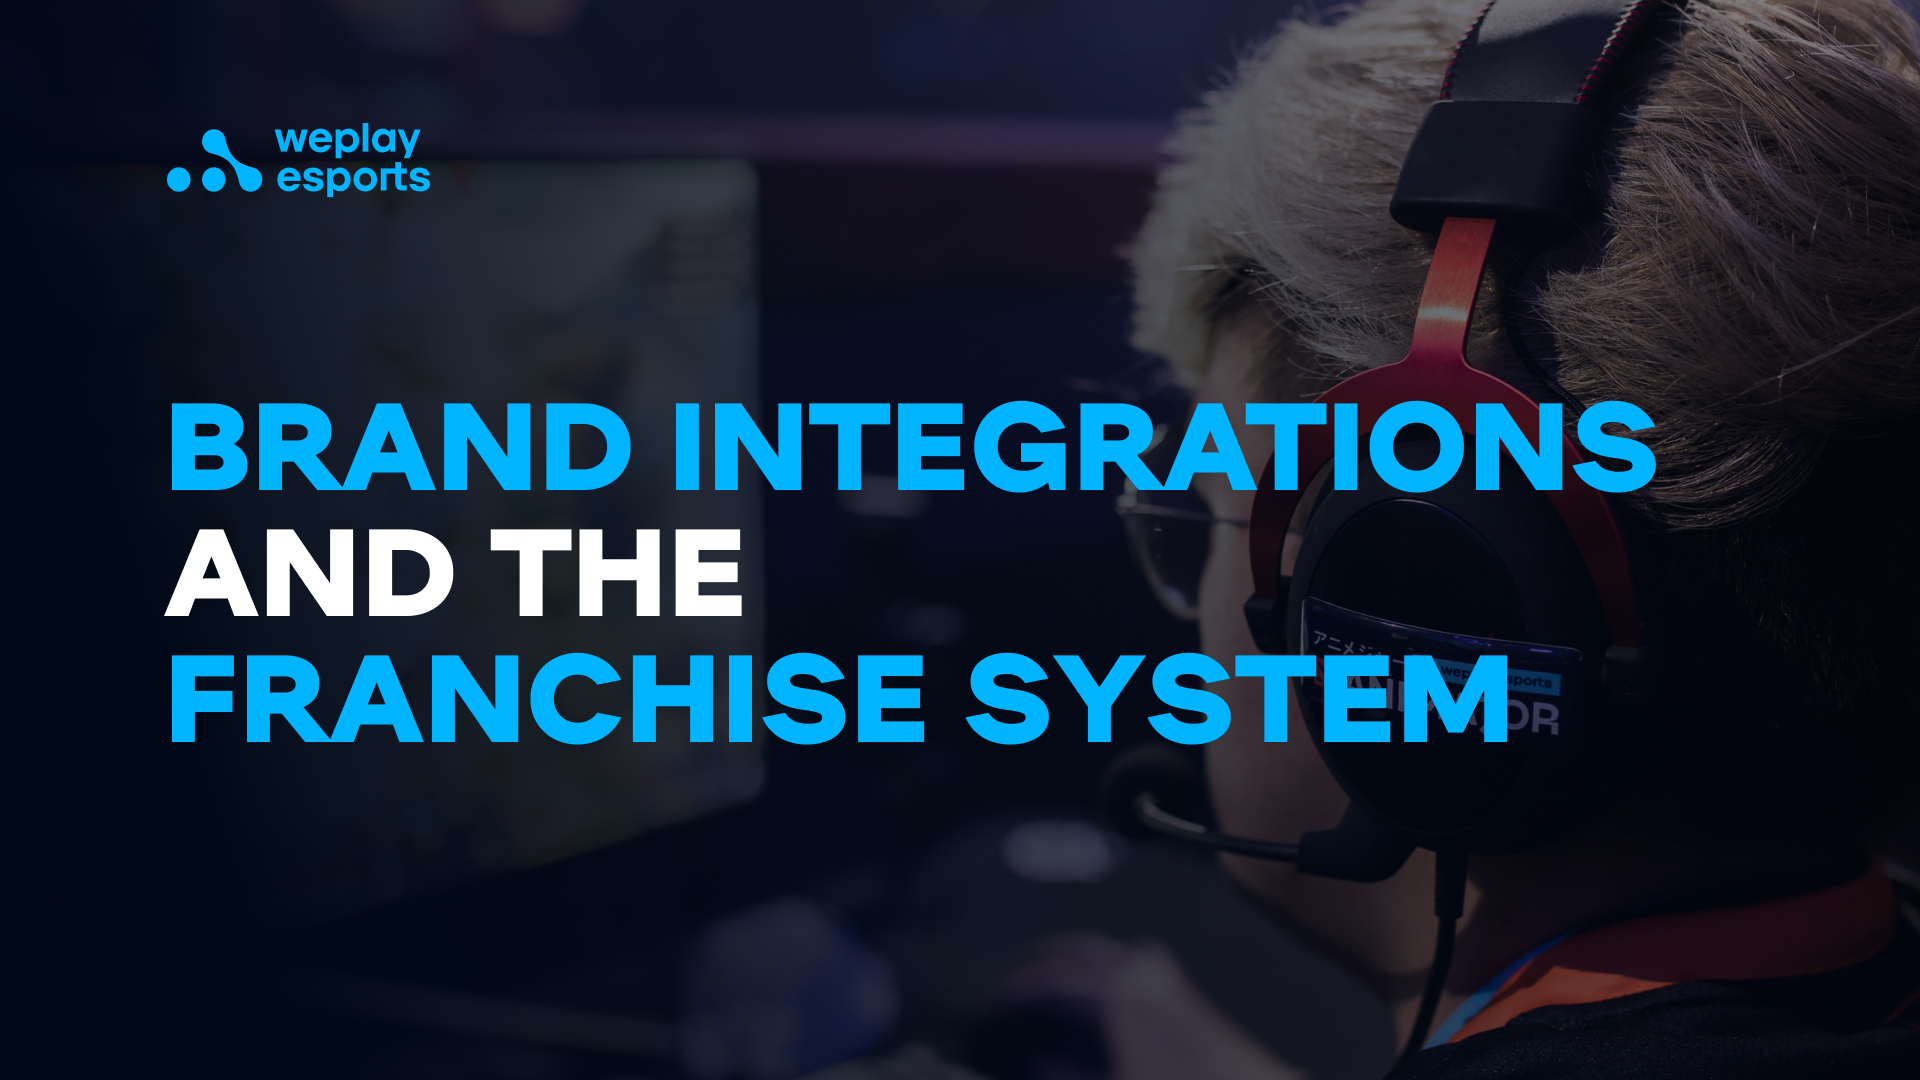 Brand integrations and the franchise system